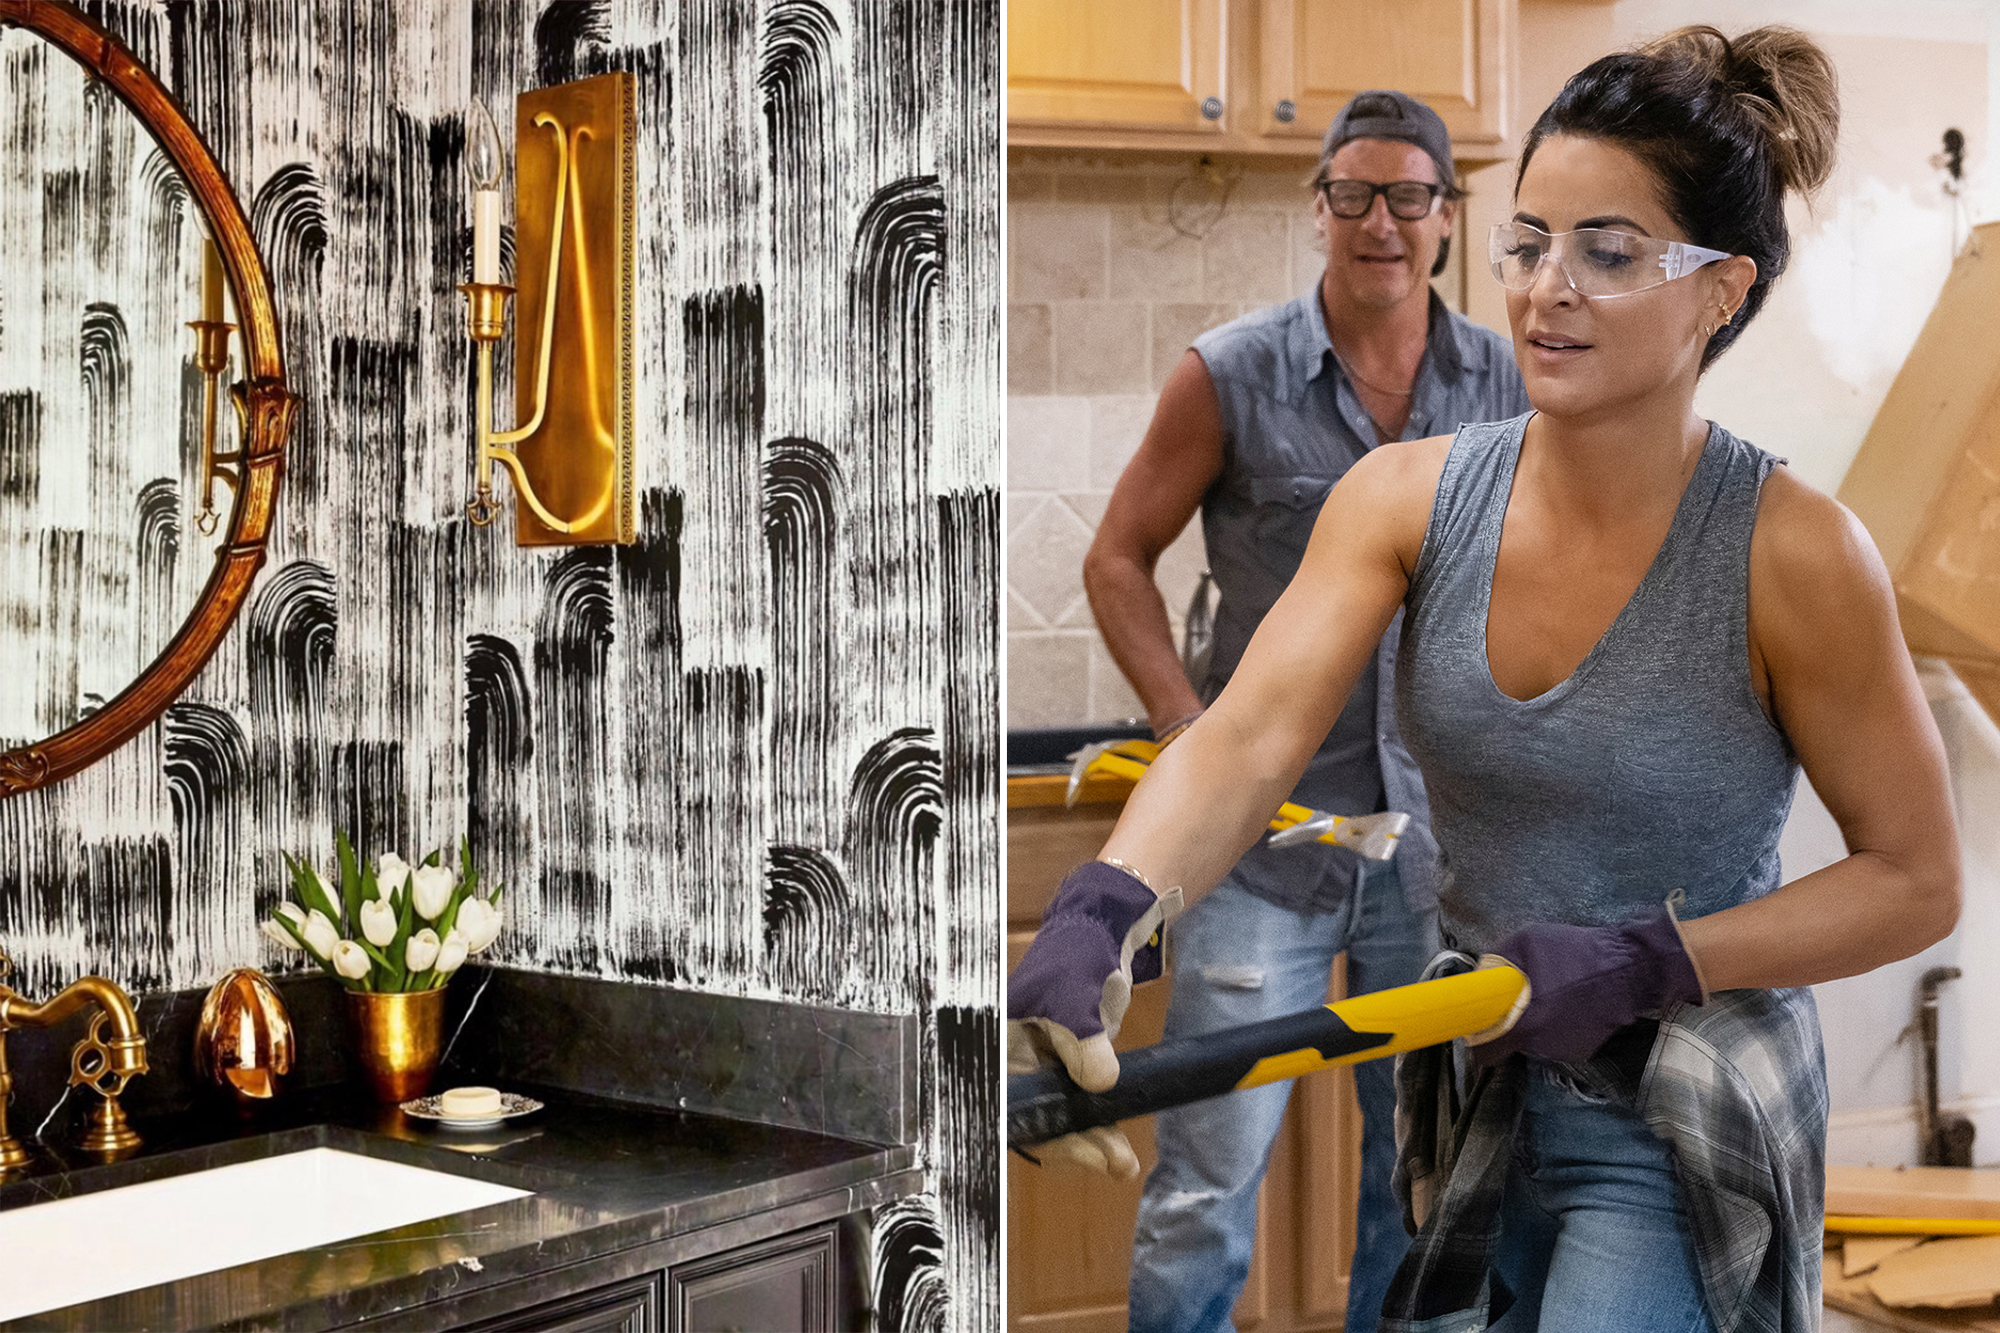 HGTV stars share their tips for quick home refreshes